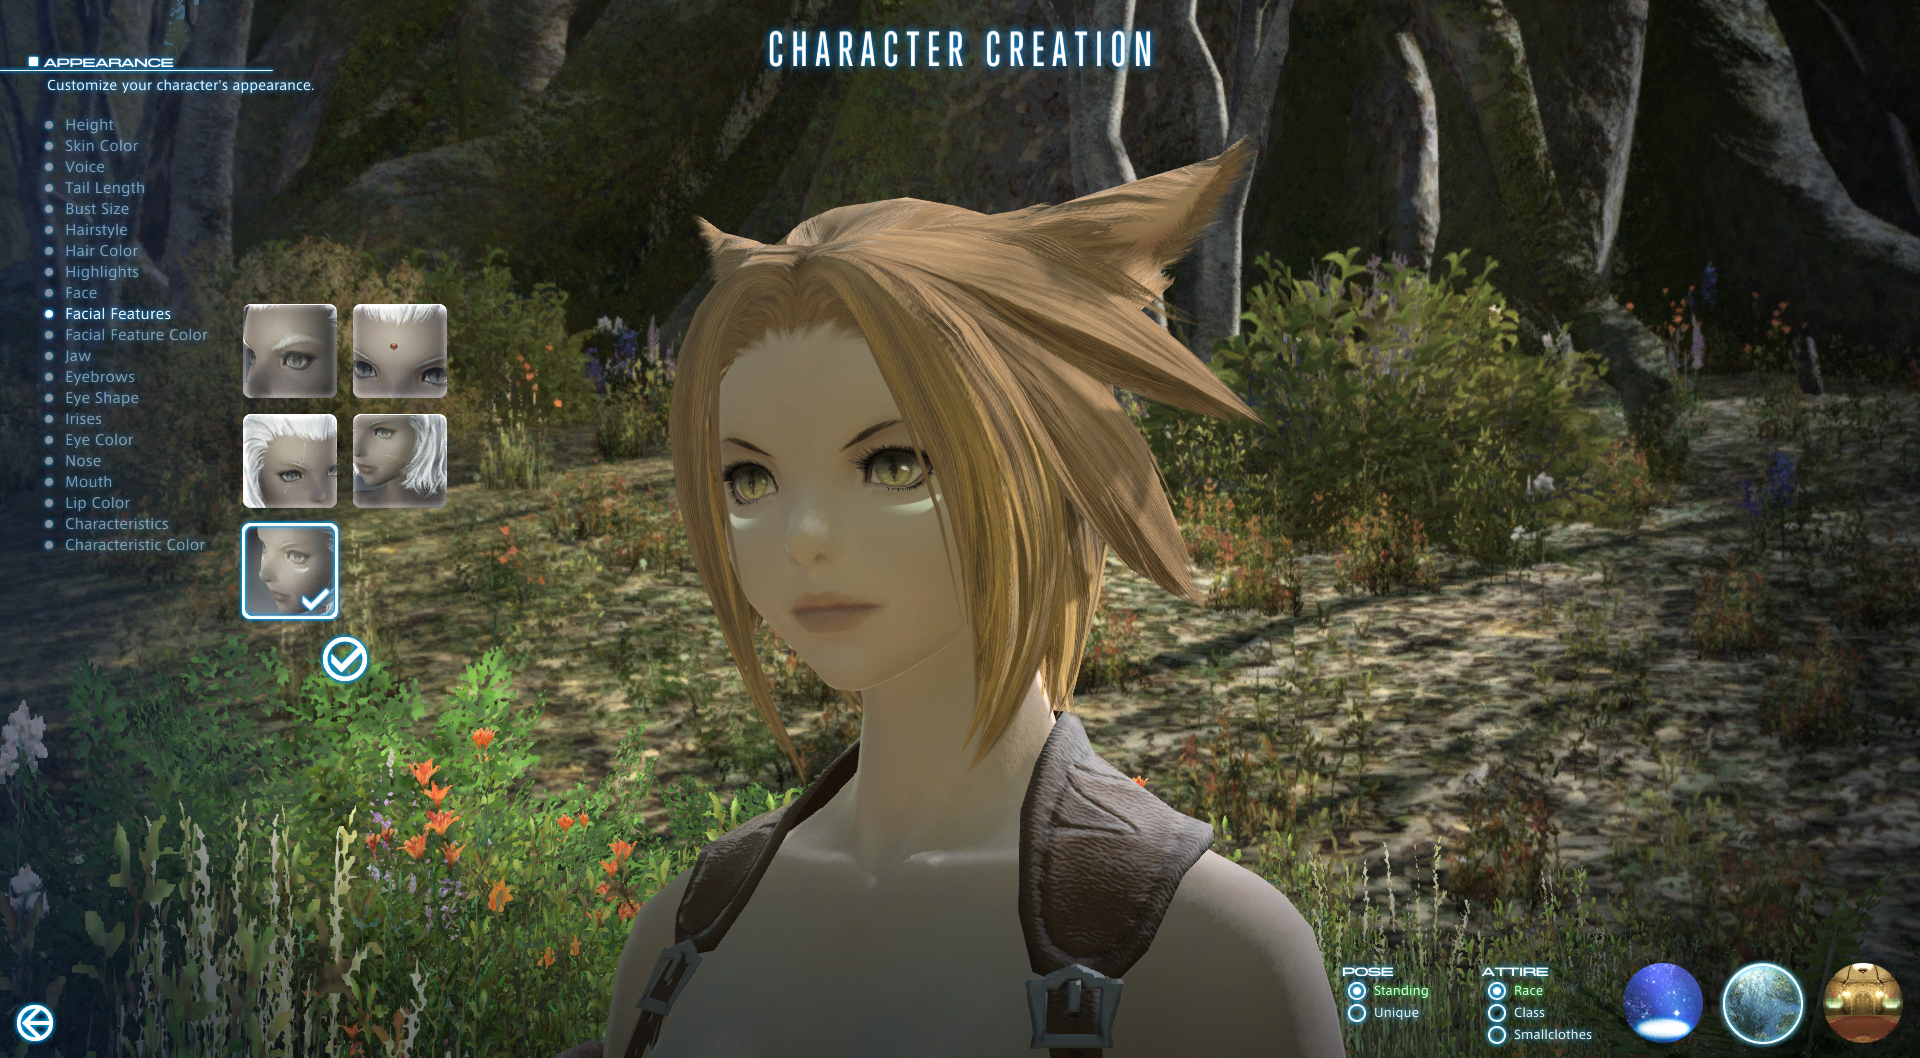 Gamer Escape Character Creation Images From A Realm Reborn